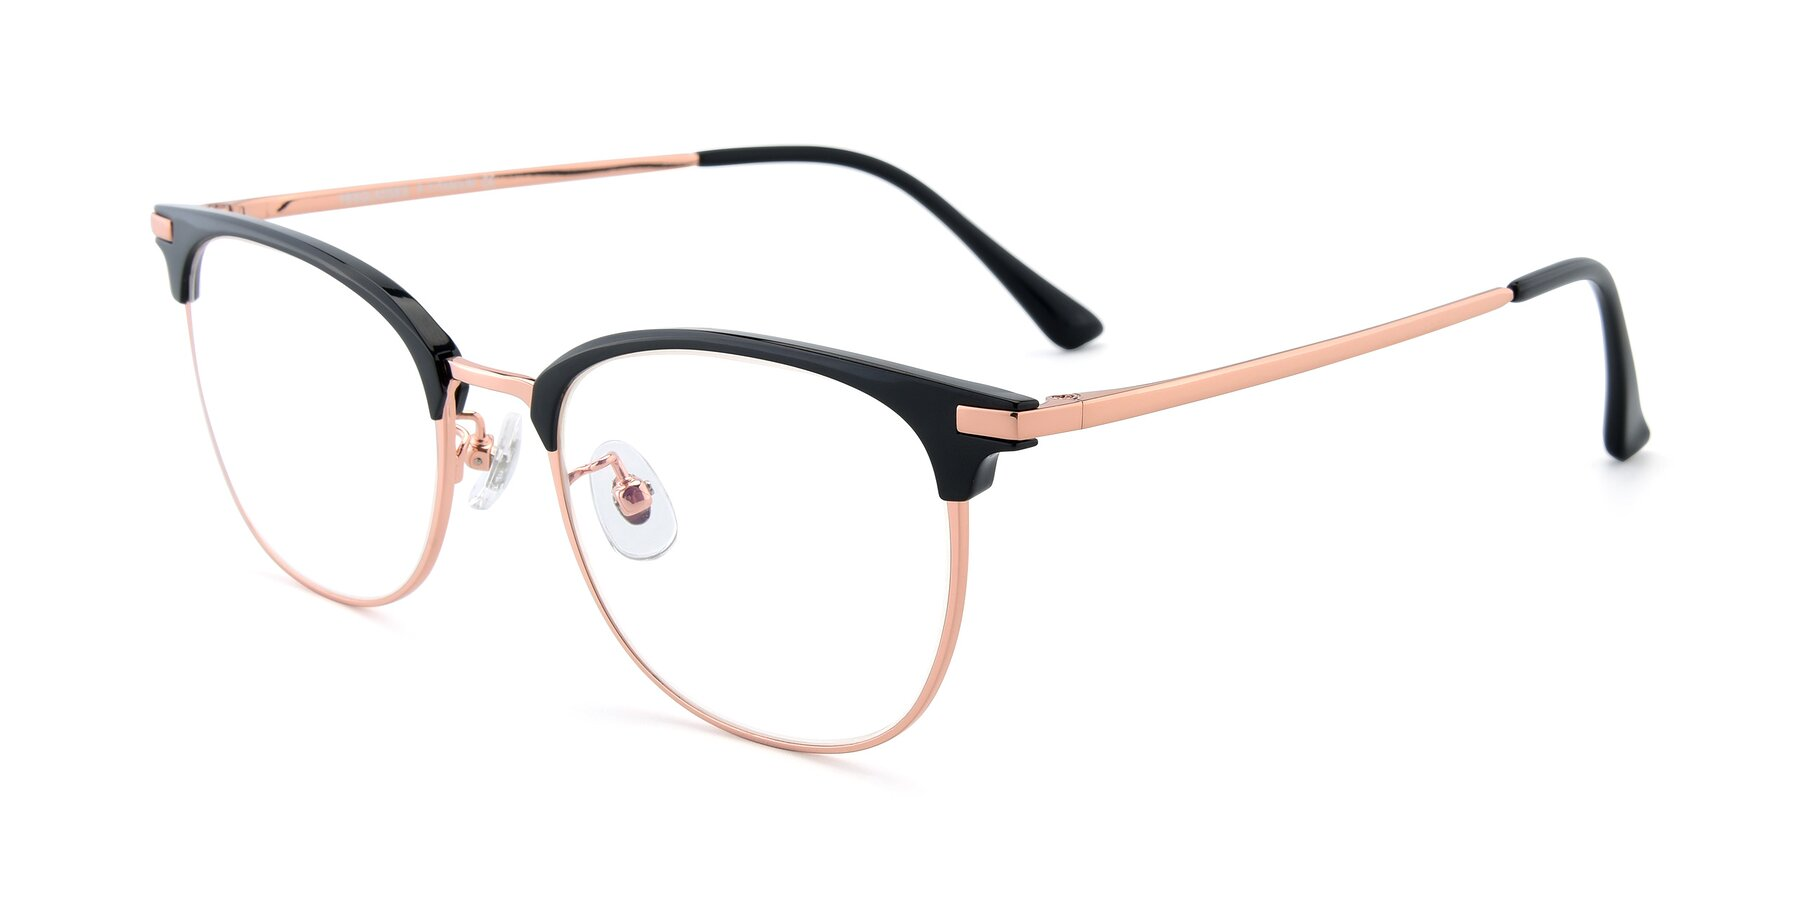 Angle of XC-5002 in Black-Rose Gold with Clear Eyeglass Lenses